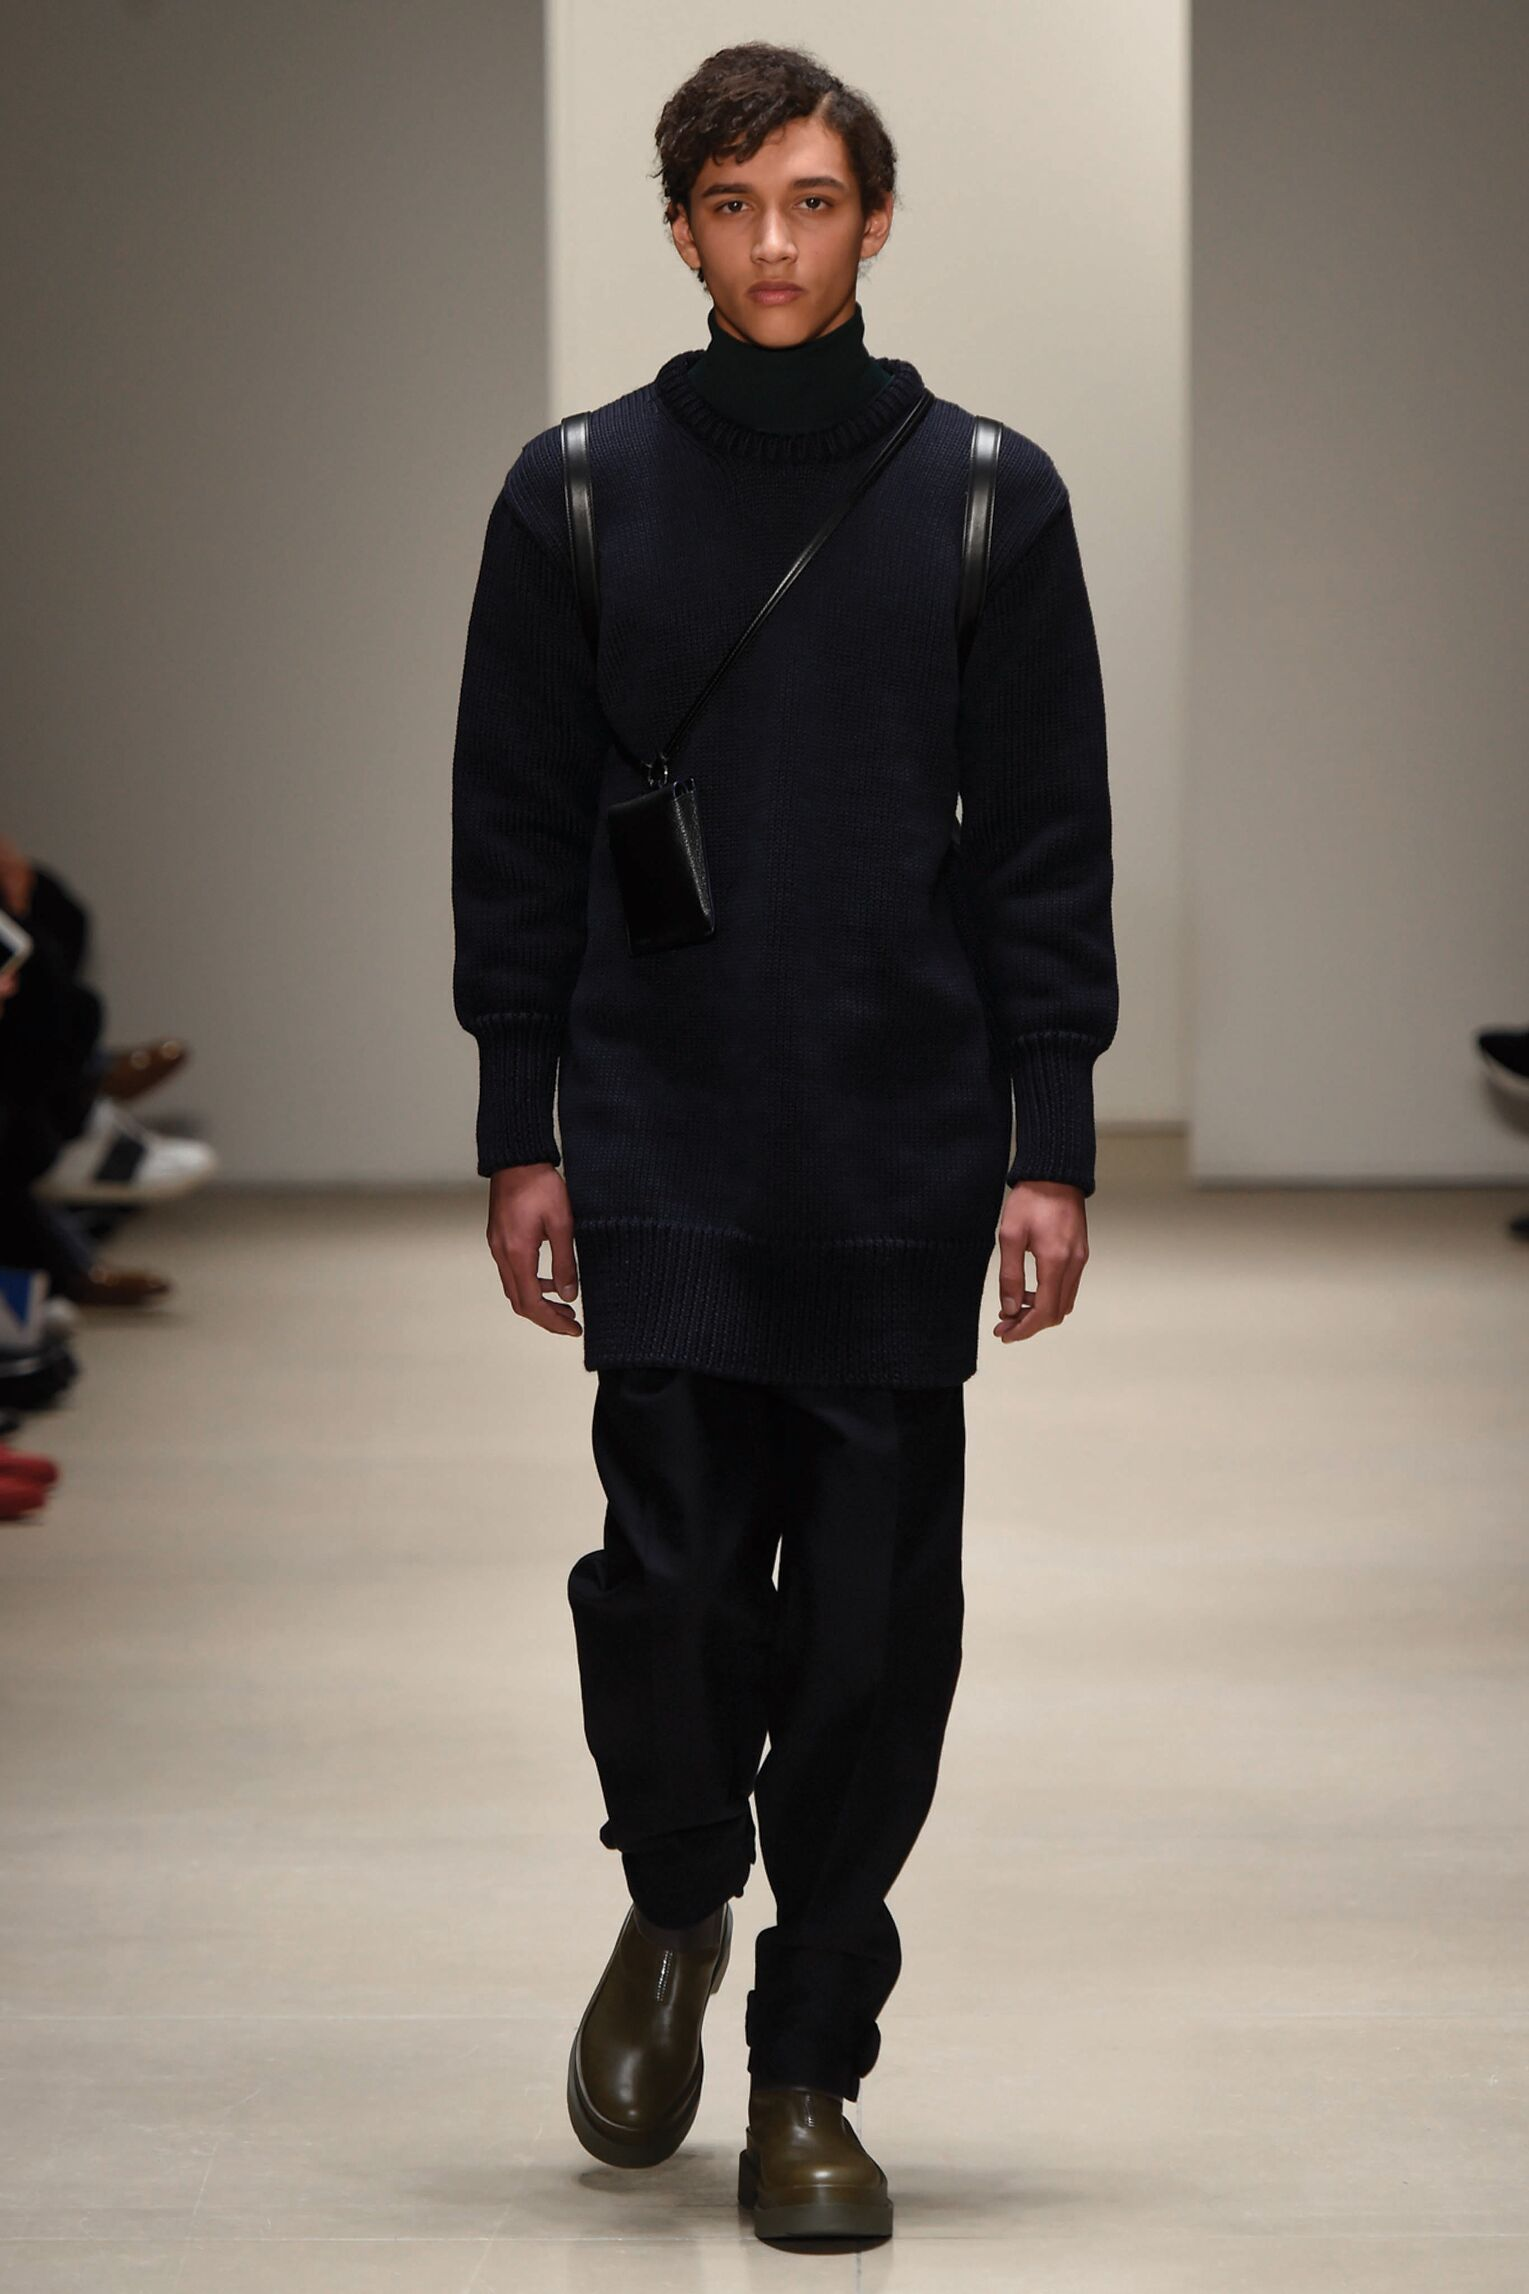 Jil Sander Fall Winter 2015 16 Men's Collection Milan Fashion Week Fashion Show